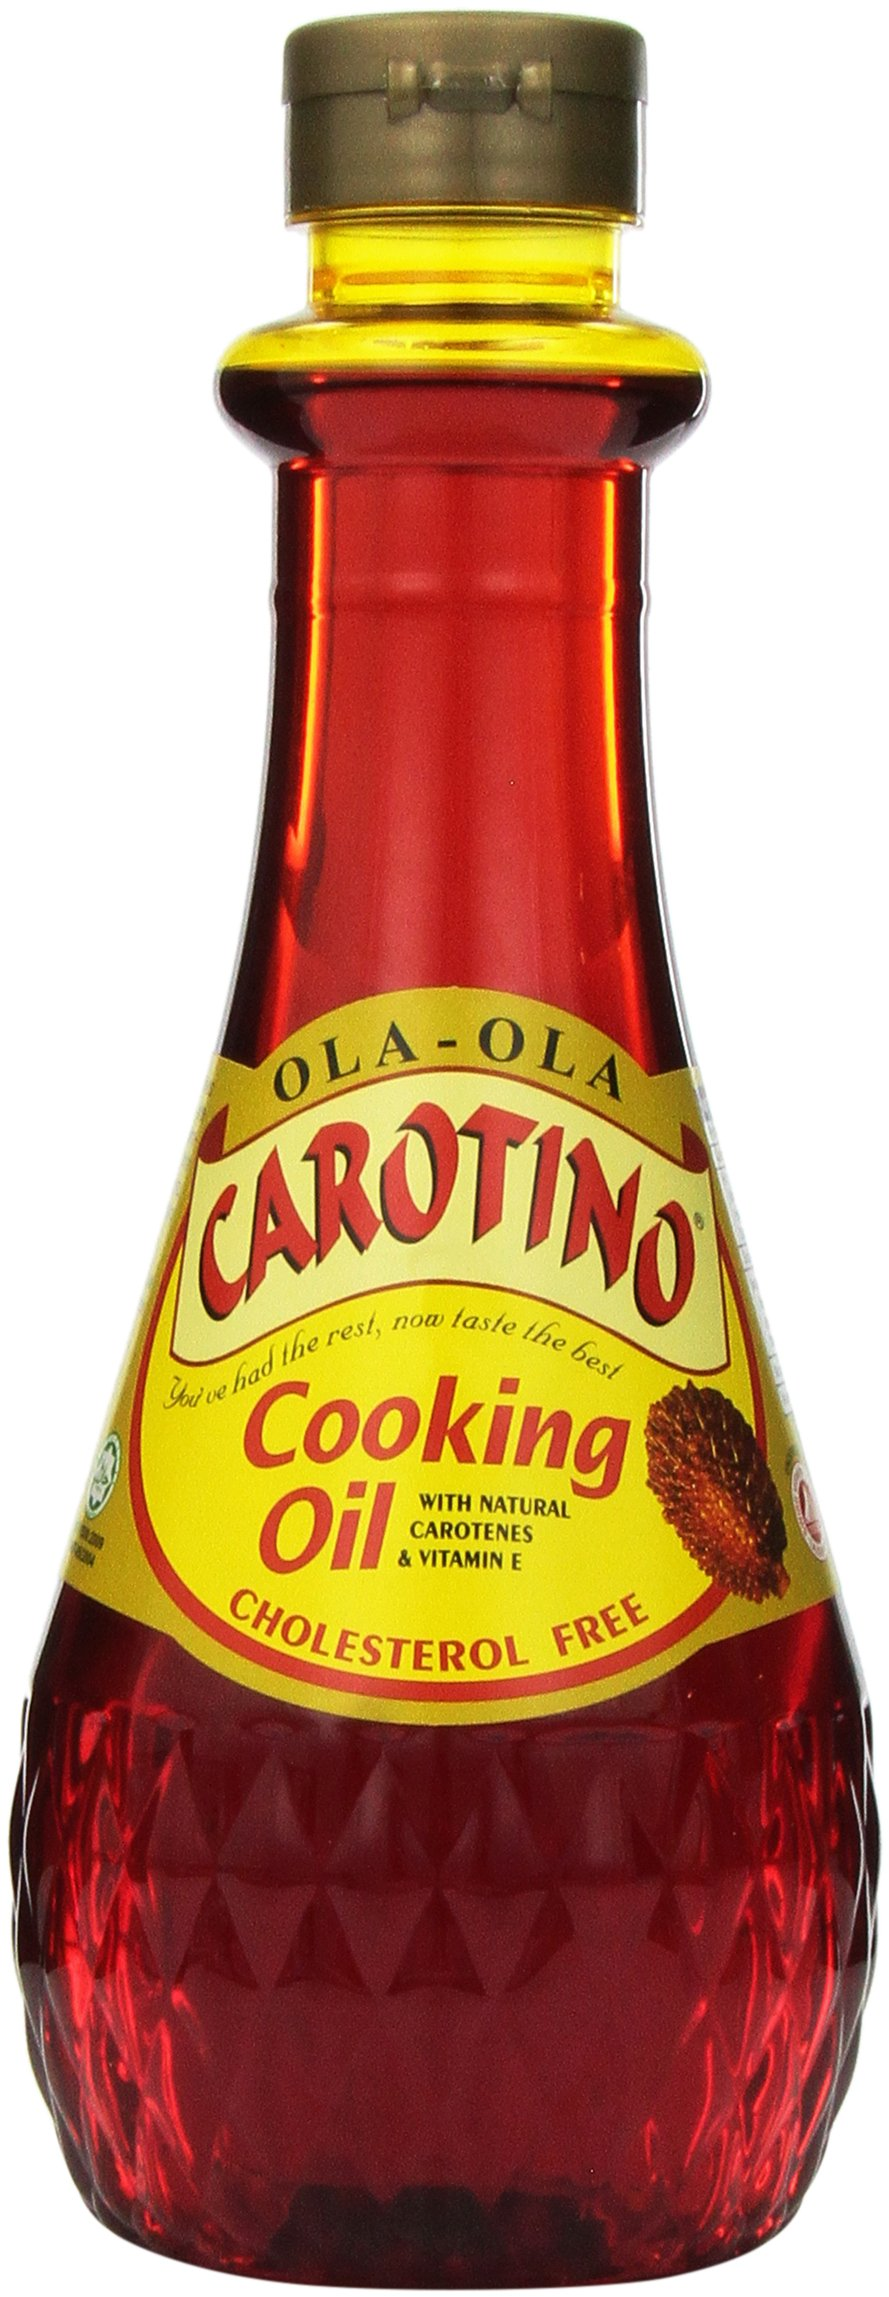 Carotino Oil (Palm & Canola Blend) 17.6 oz